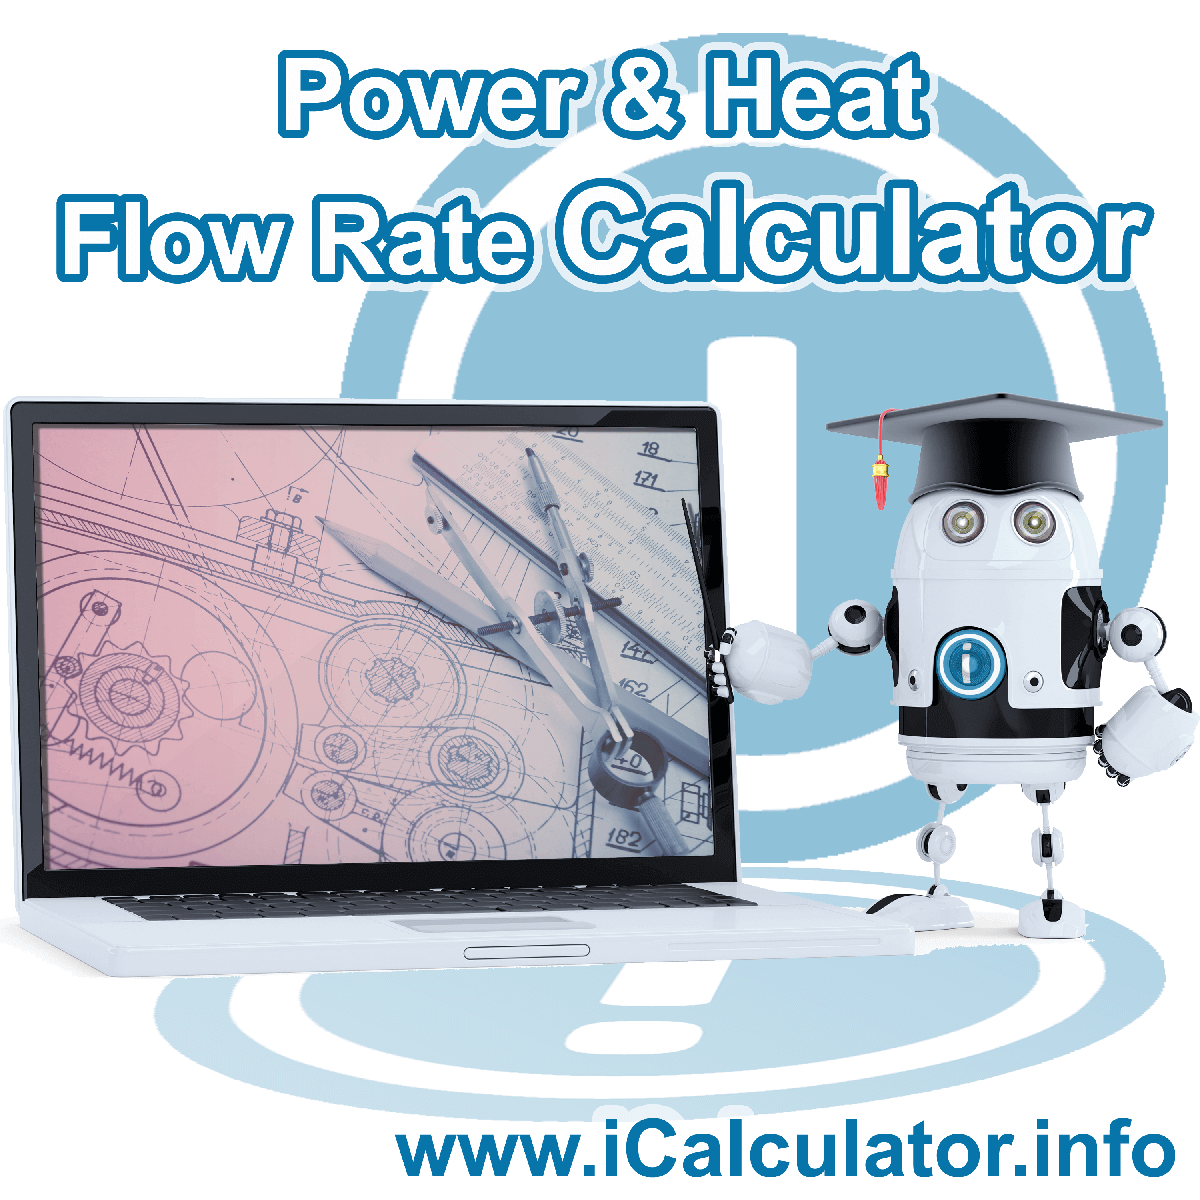 Power and Heat Flow Rate Conversion Calculator: This image showsPower and Heat Flow Rate Conversion formula and algorythms associated calculations used by the Power and Heat Flow Rate Conversion Calculator